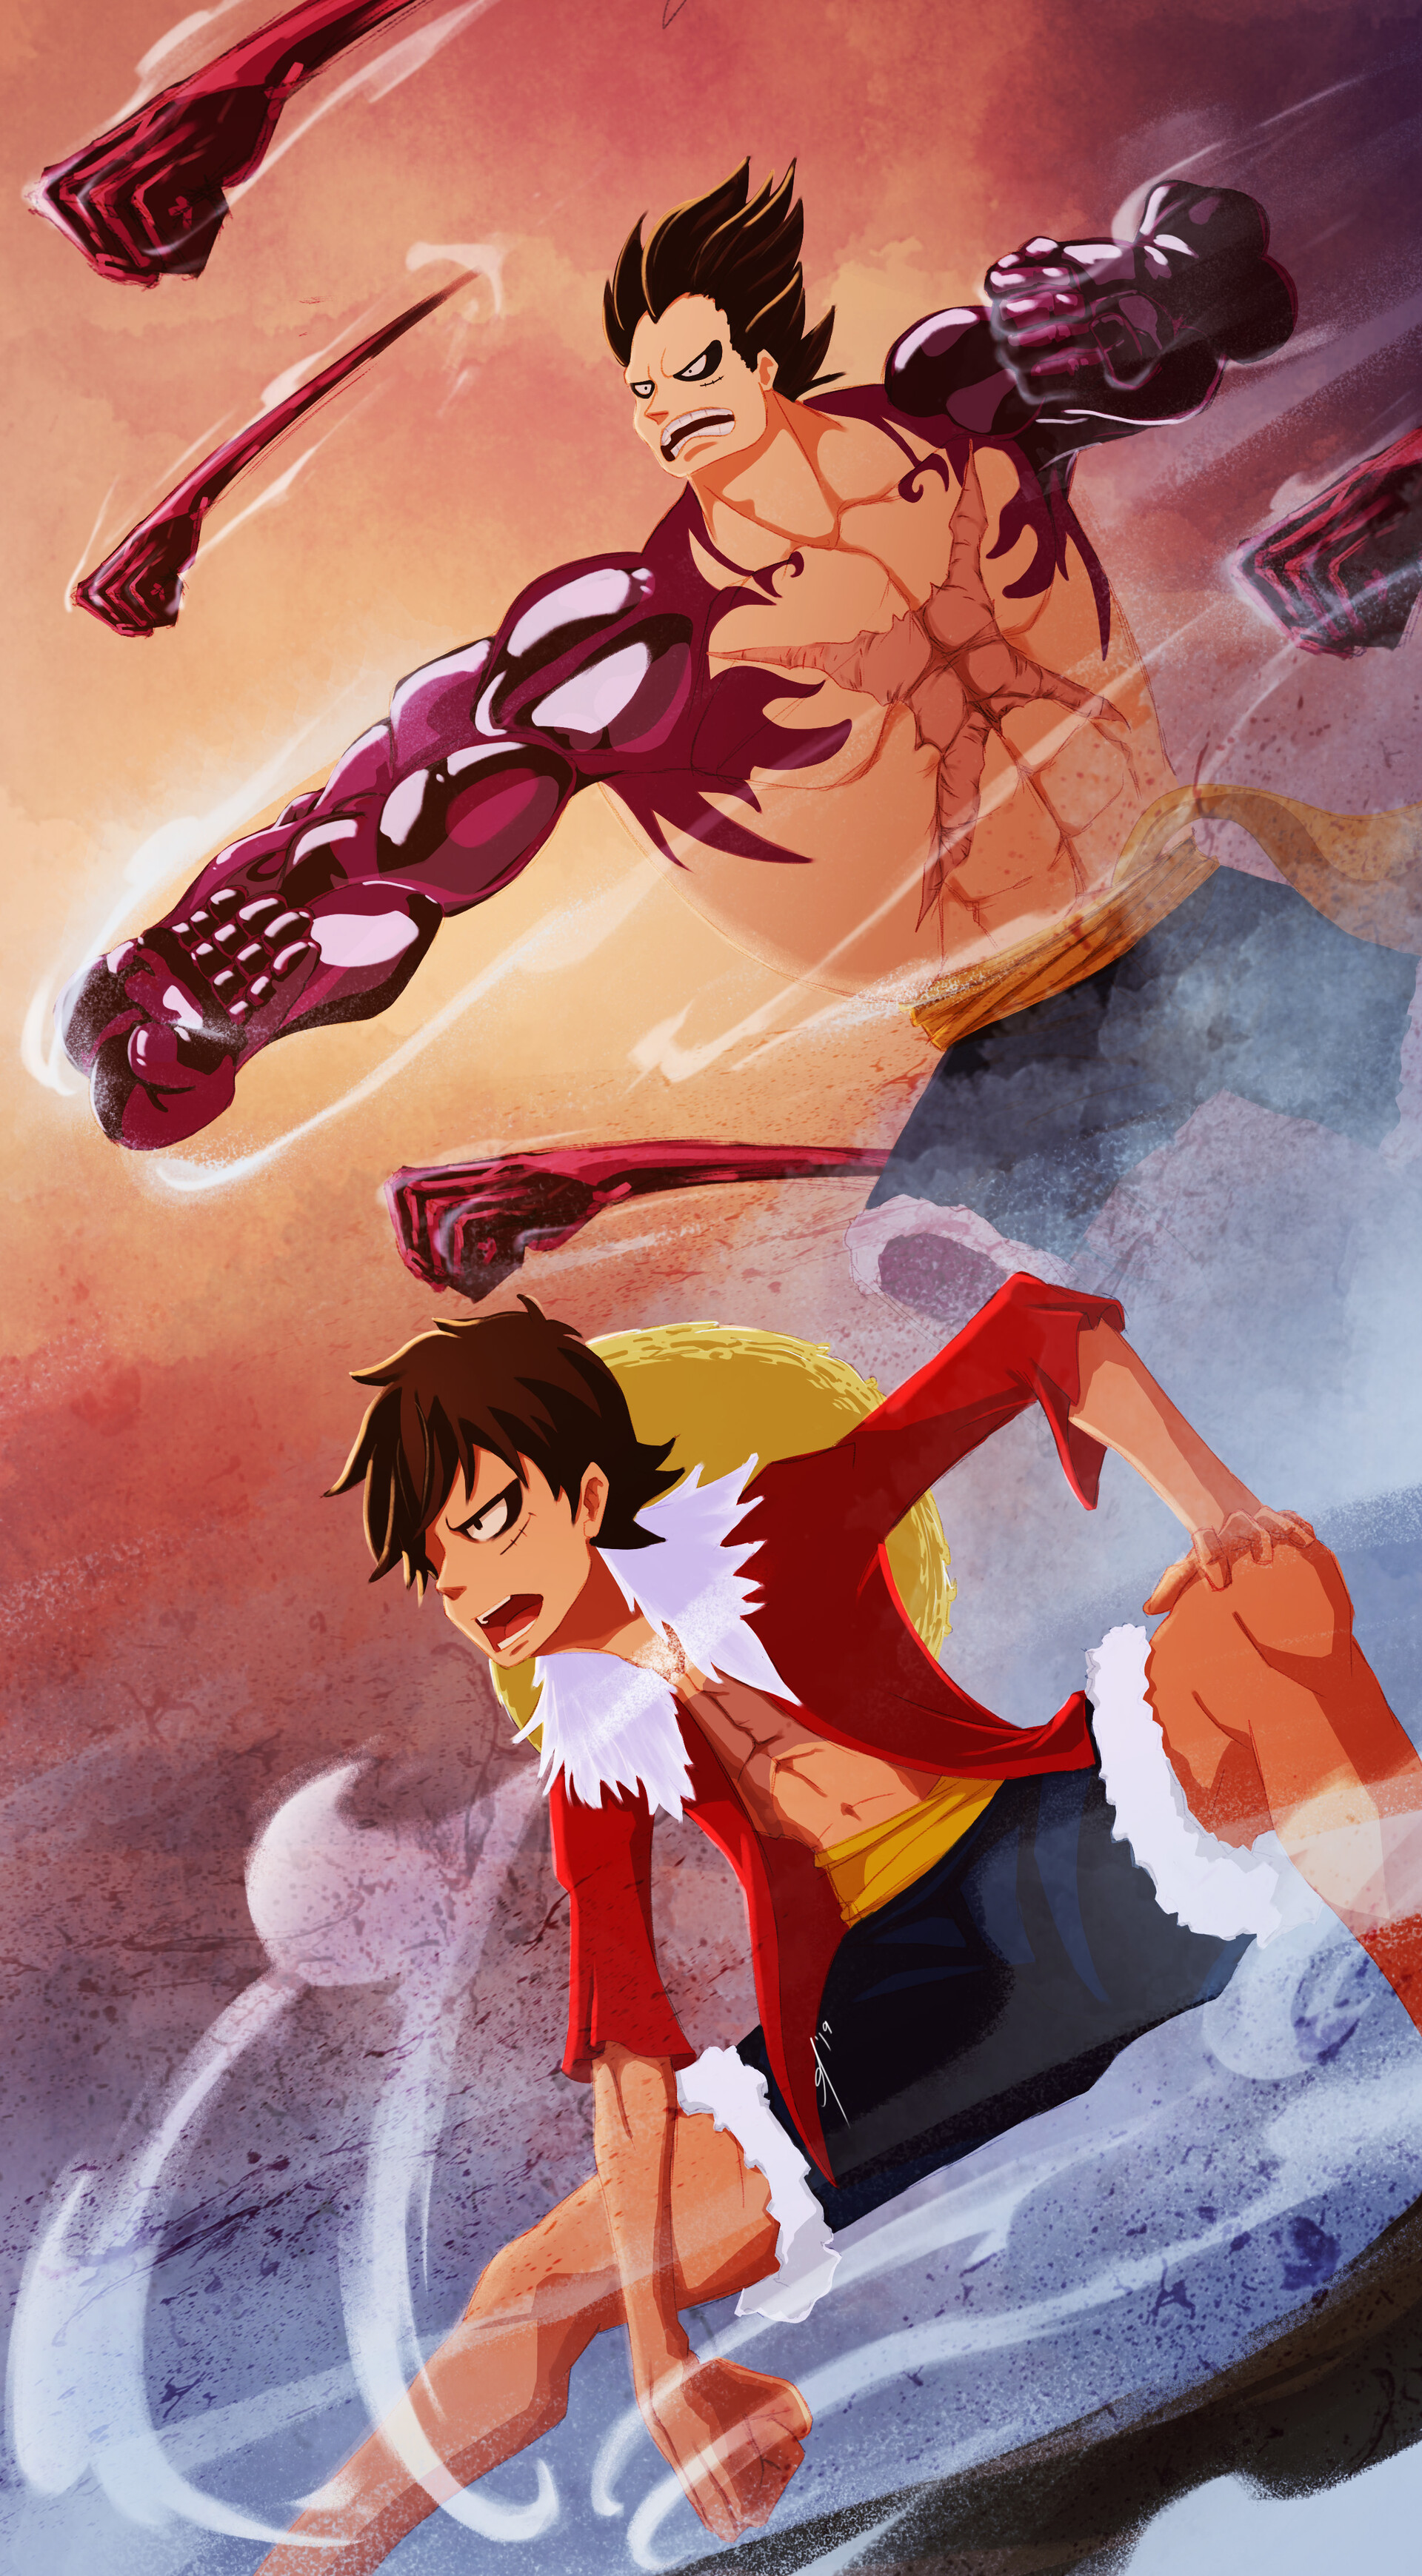 Tons of awesome luffy gear fourth wallpapers to download for free. When Does Luffy Use Fourth Gear